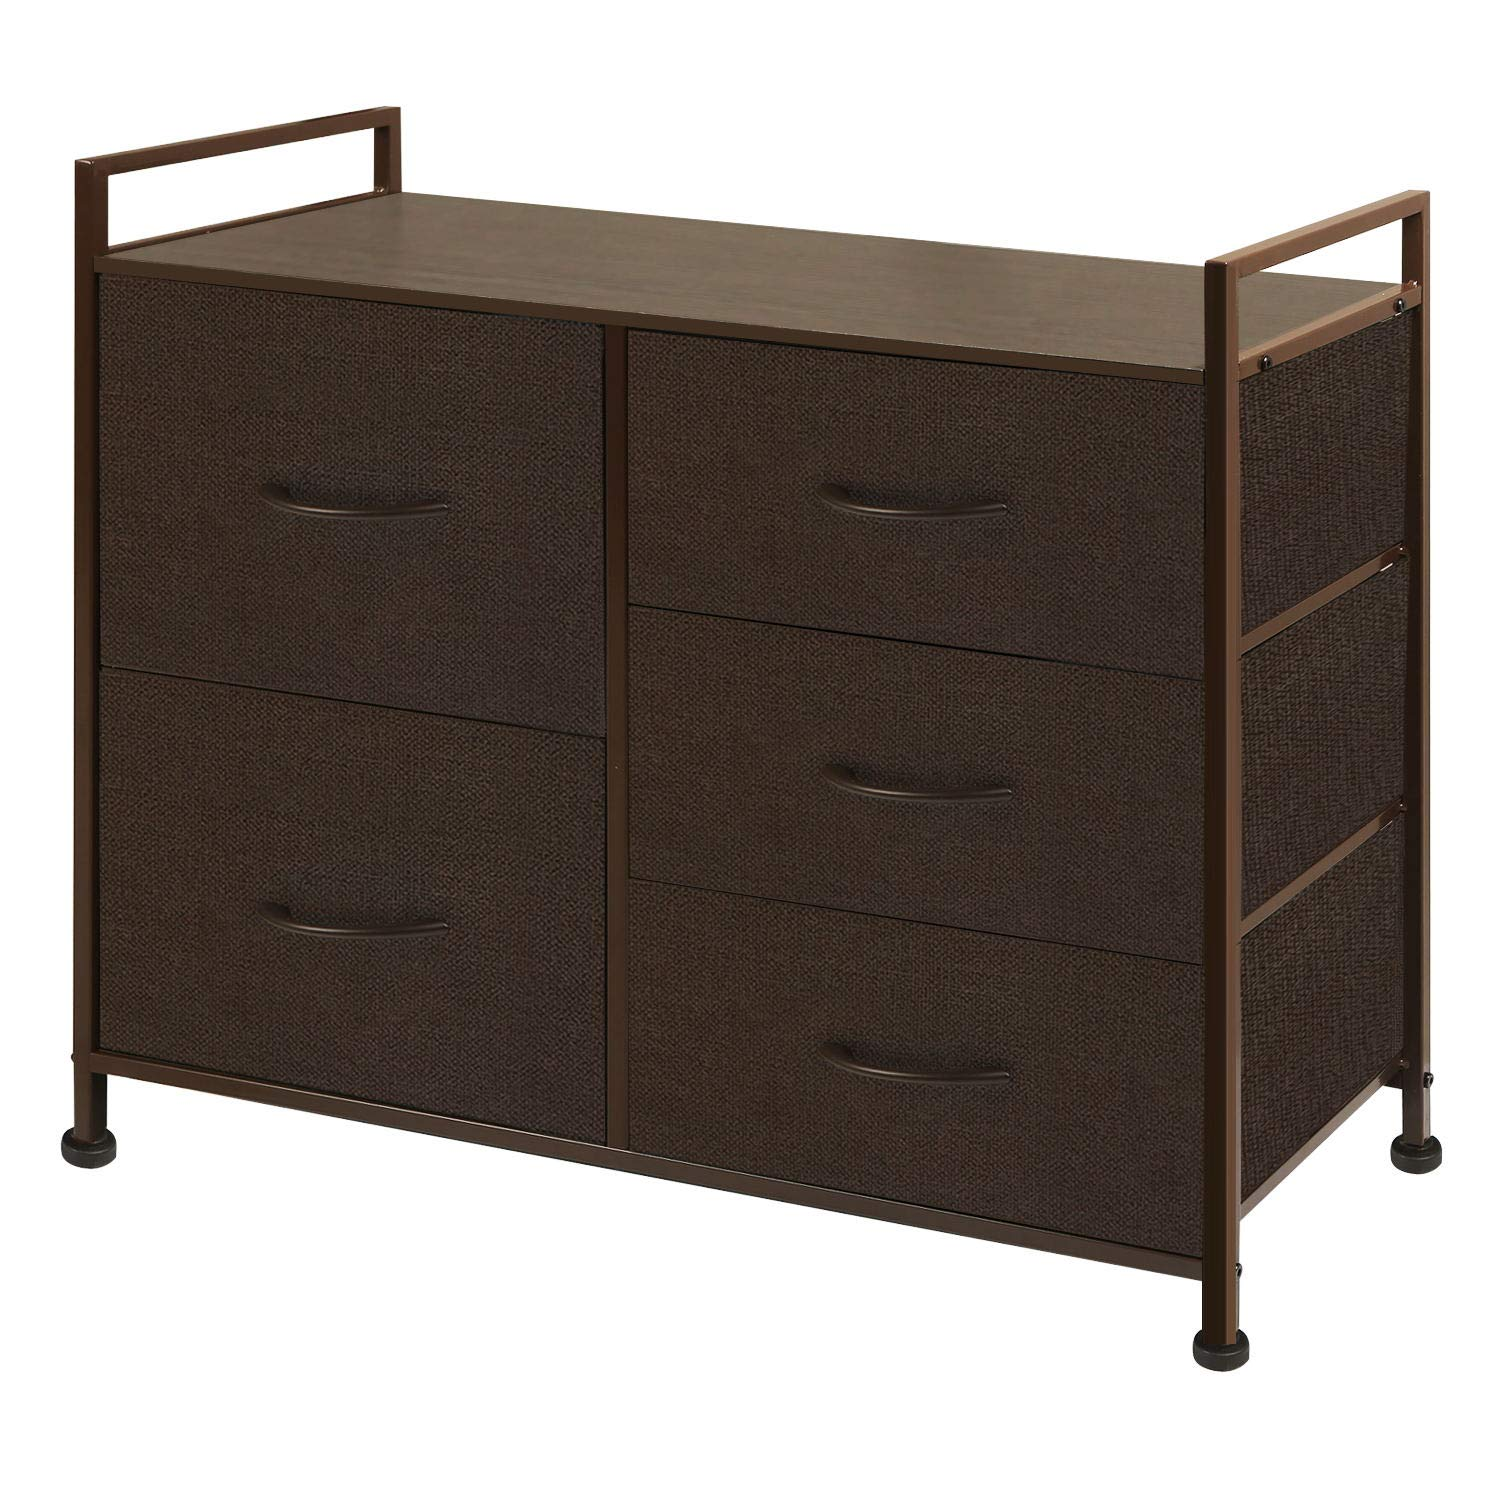 WLIVE Dresser with 5 Drawers, Fabric Storage Tower with Handrail, Organizer Unit for Bedroom, Hallway, Entryway, Closets, Sturdy Steel Frame, Wood Top, Easy Pull Handle by WLIVE